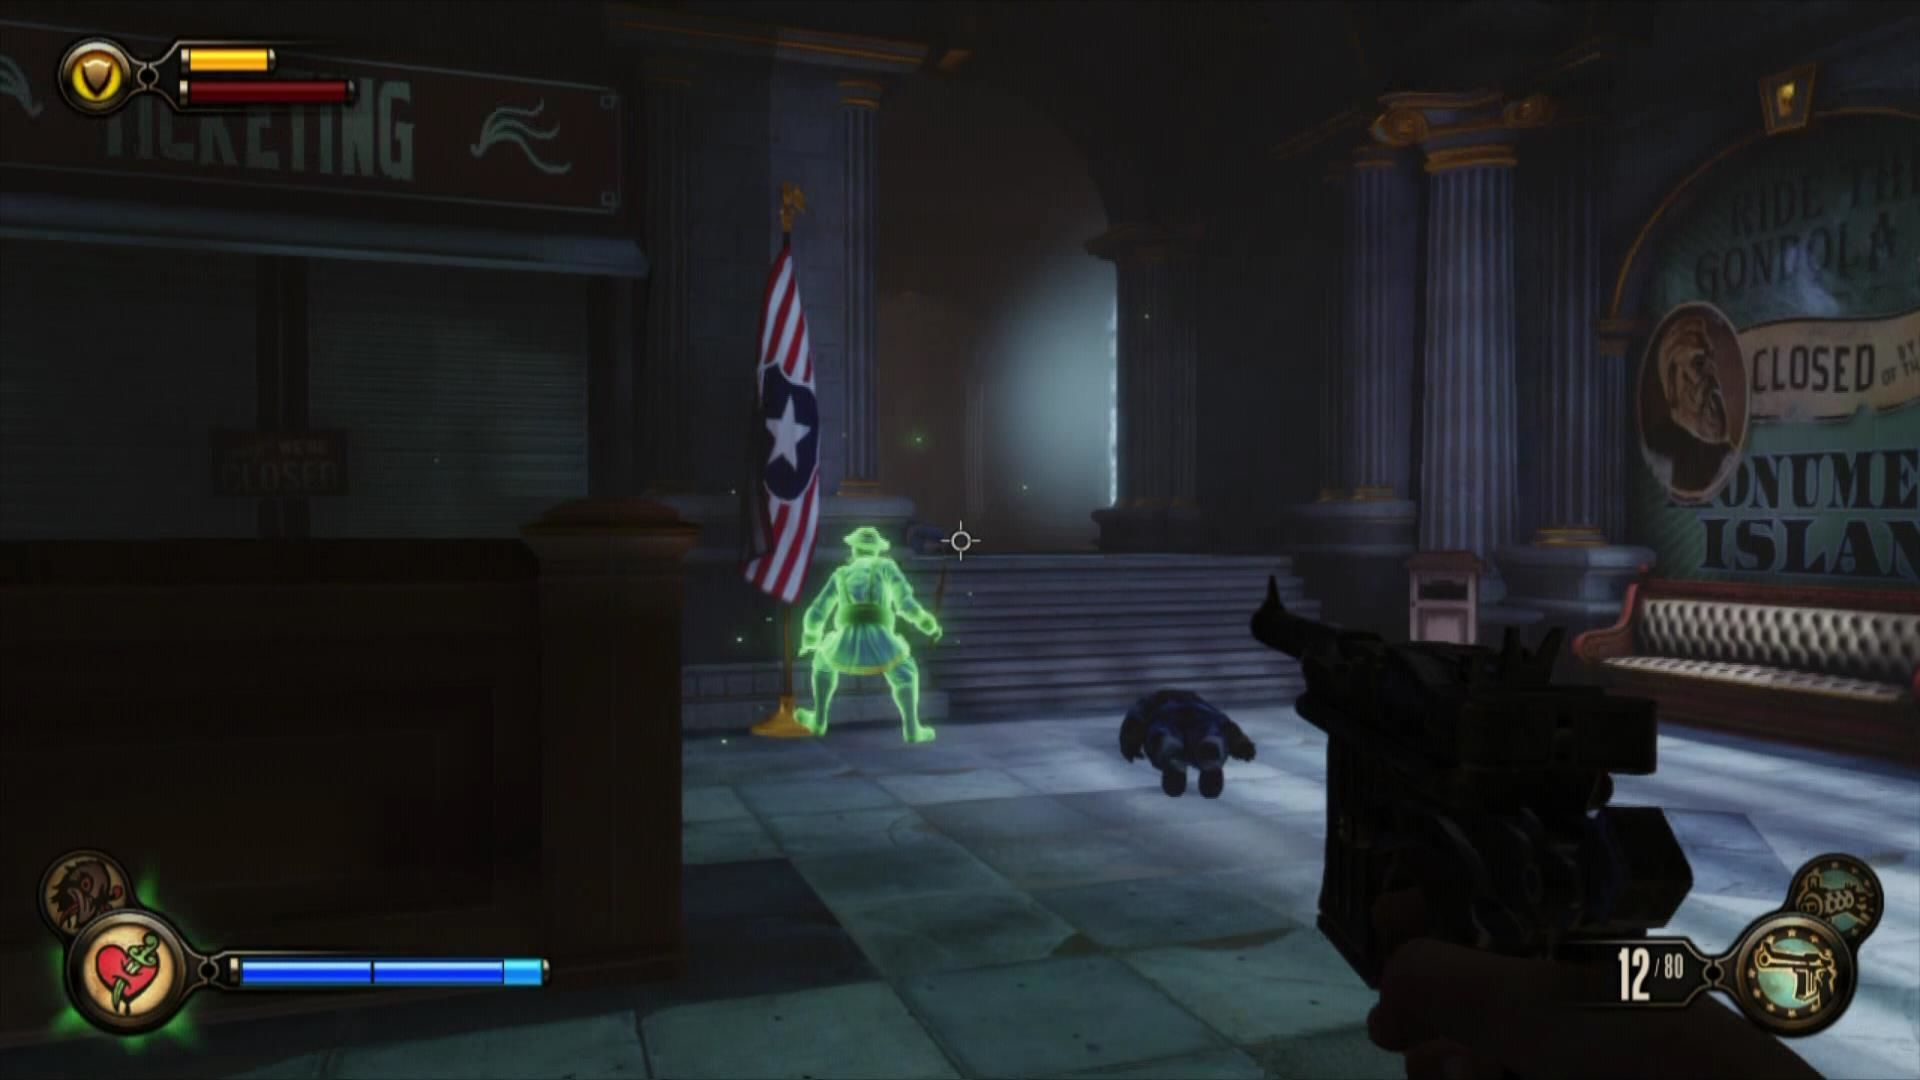 BioShock Infinite Xbox 360 You used your possession vigor to turn this enemy to your side temporarily.